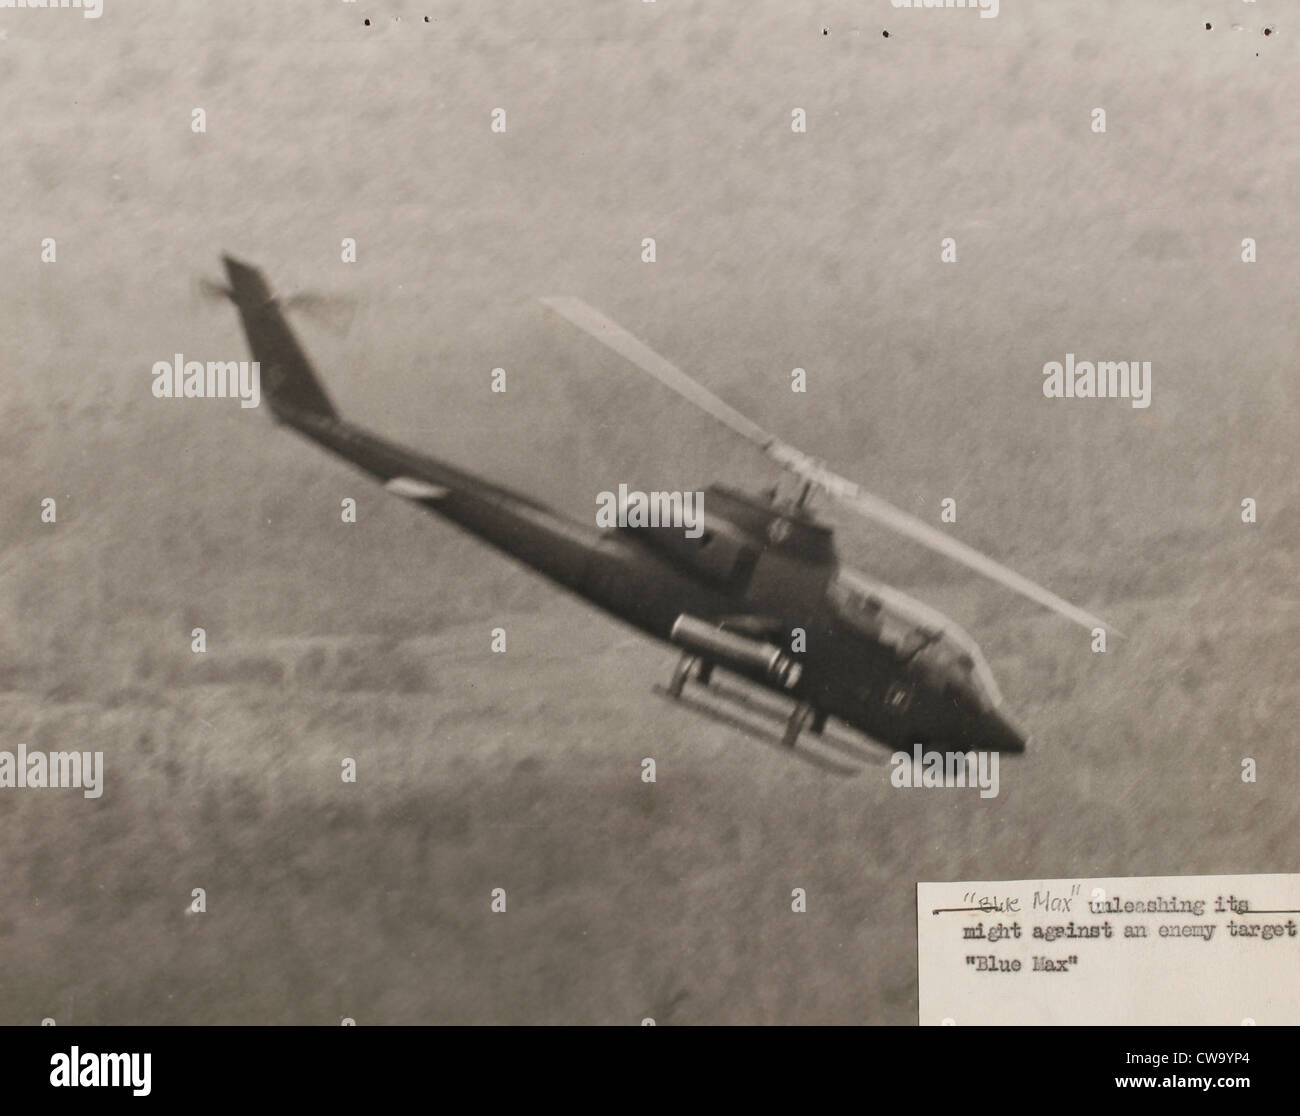 2/20th Aerial Rocket Artillery Blue Max, 1st Cavalry Division huey cobra gunships vietnam war 1969 Quan Loi Stock Photo